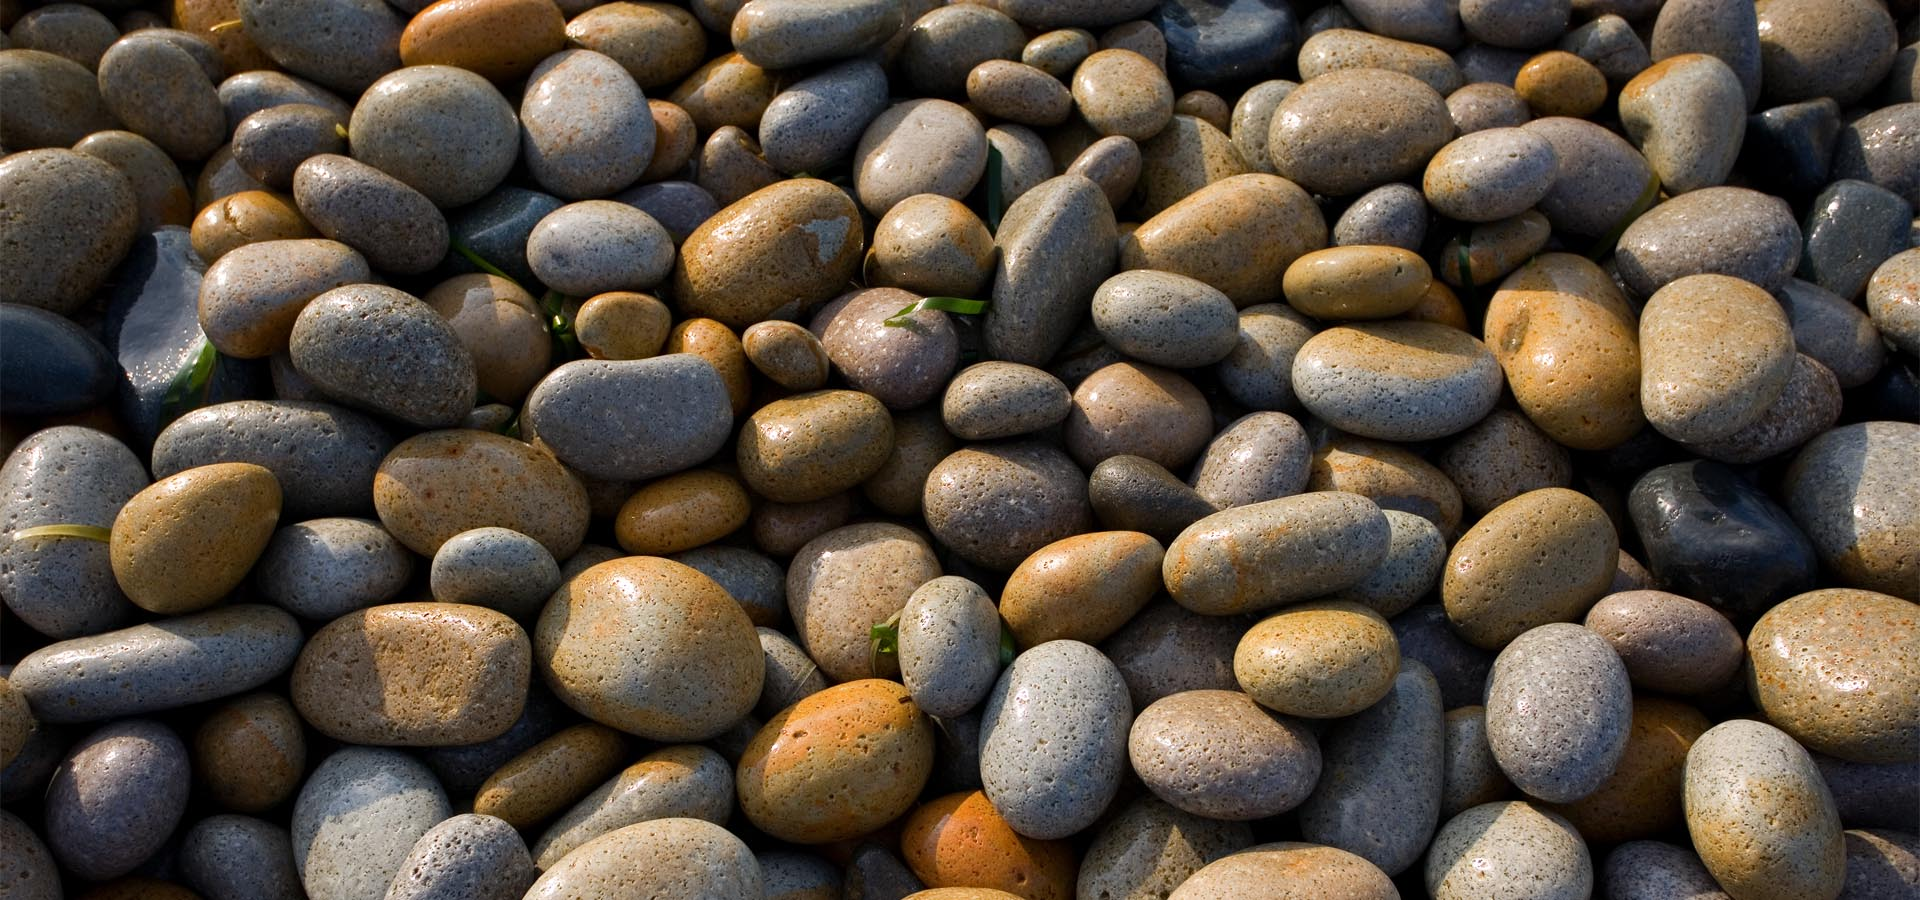 Scottish pebbles: A sizing guide